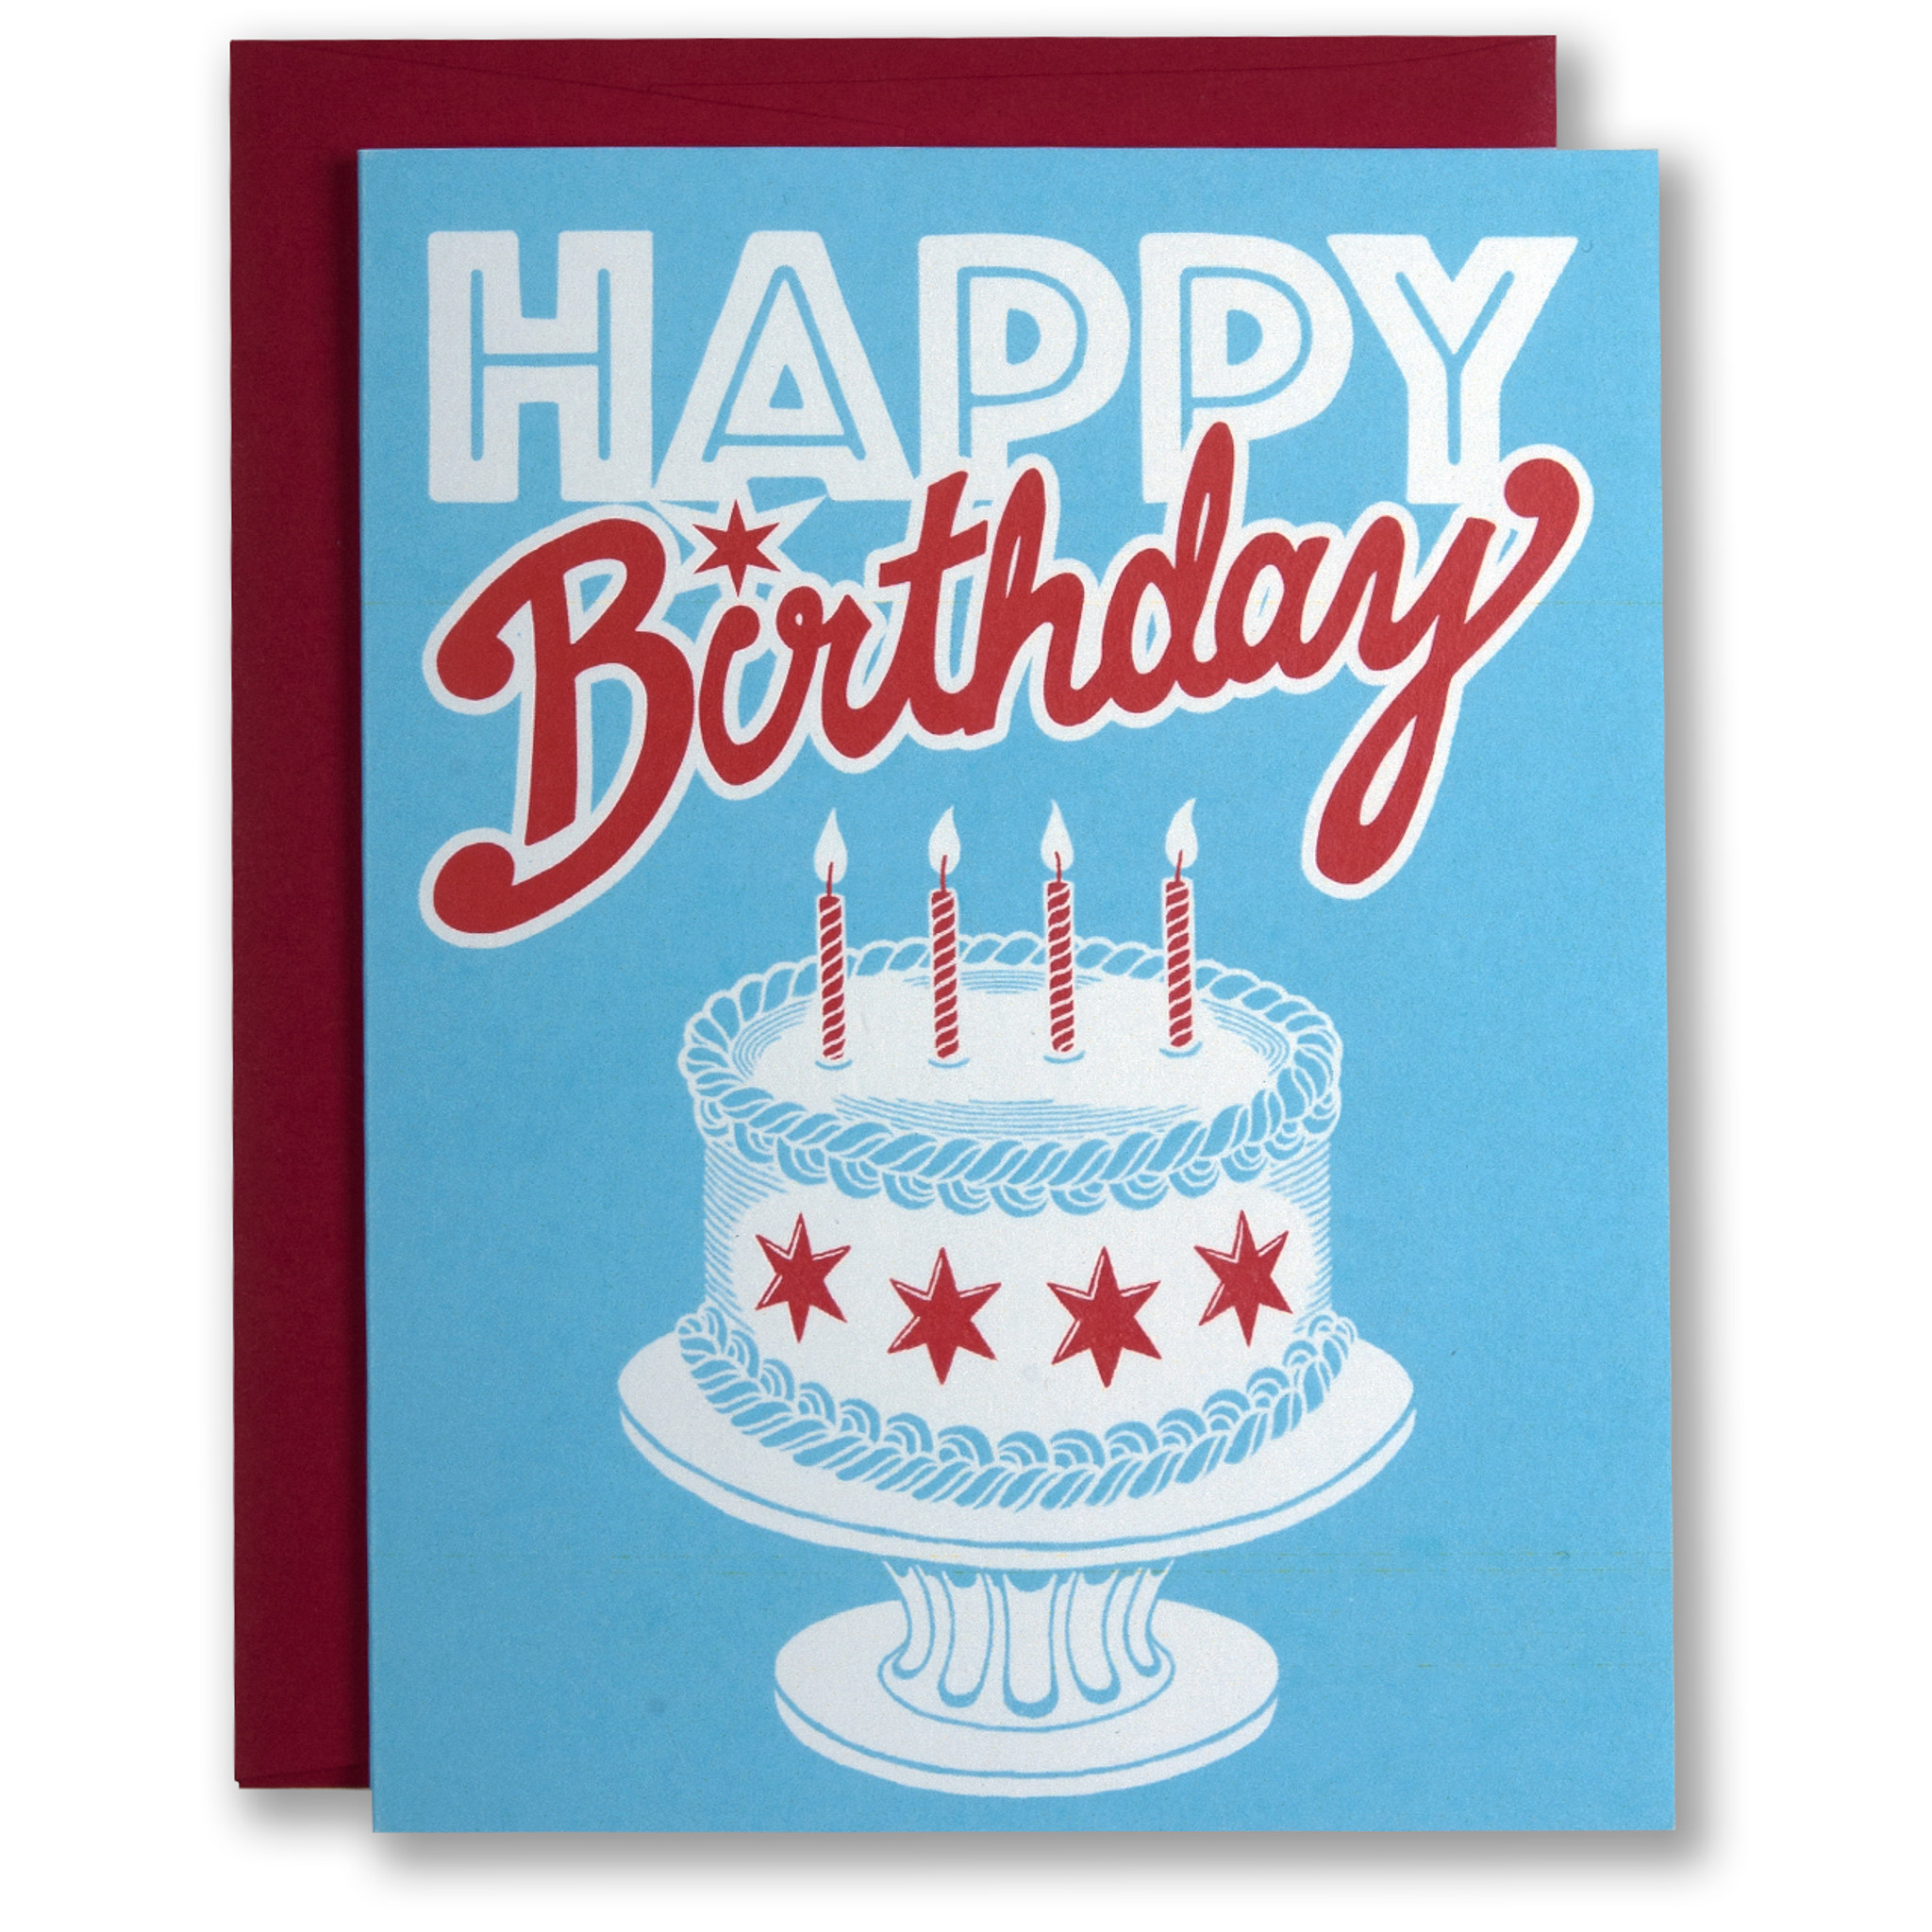 Wondrous Chicago Birthday Cake Greeting Card Personalised Birthday Cards Petedlily Jamesorg